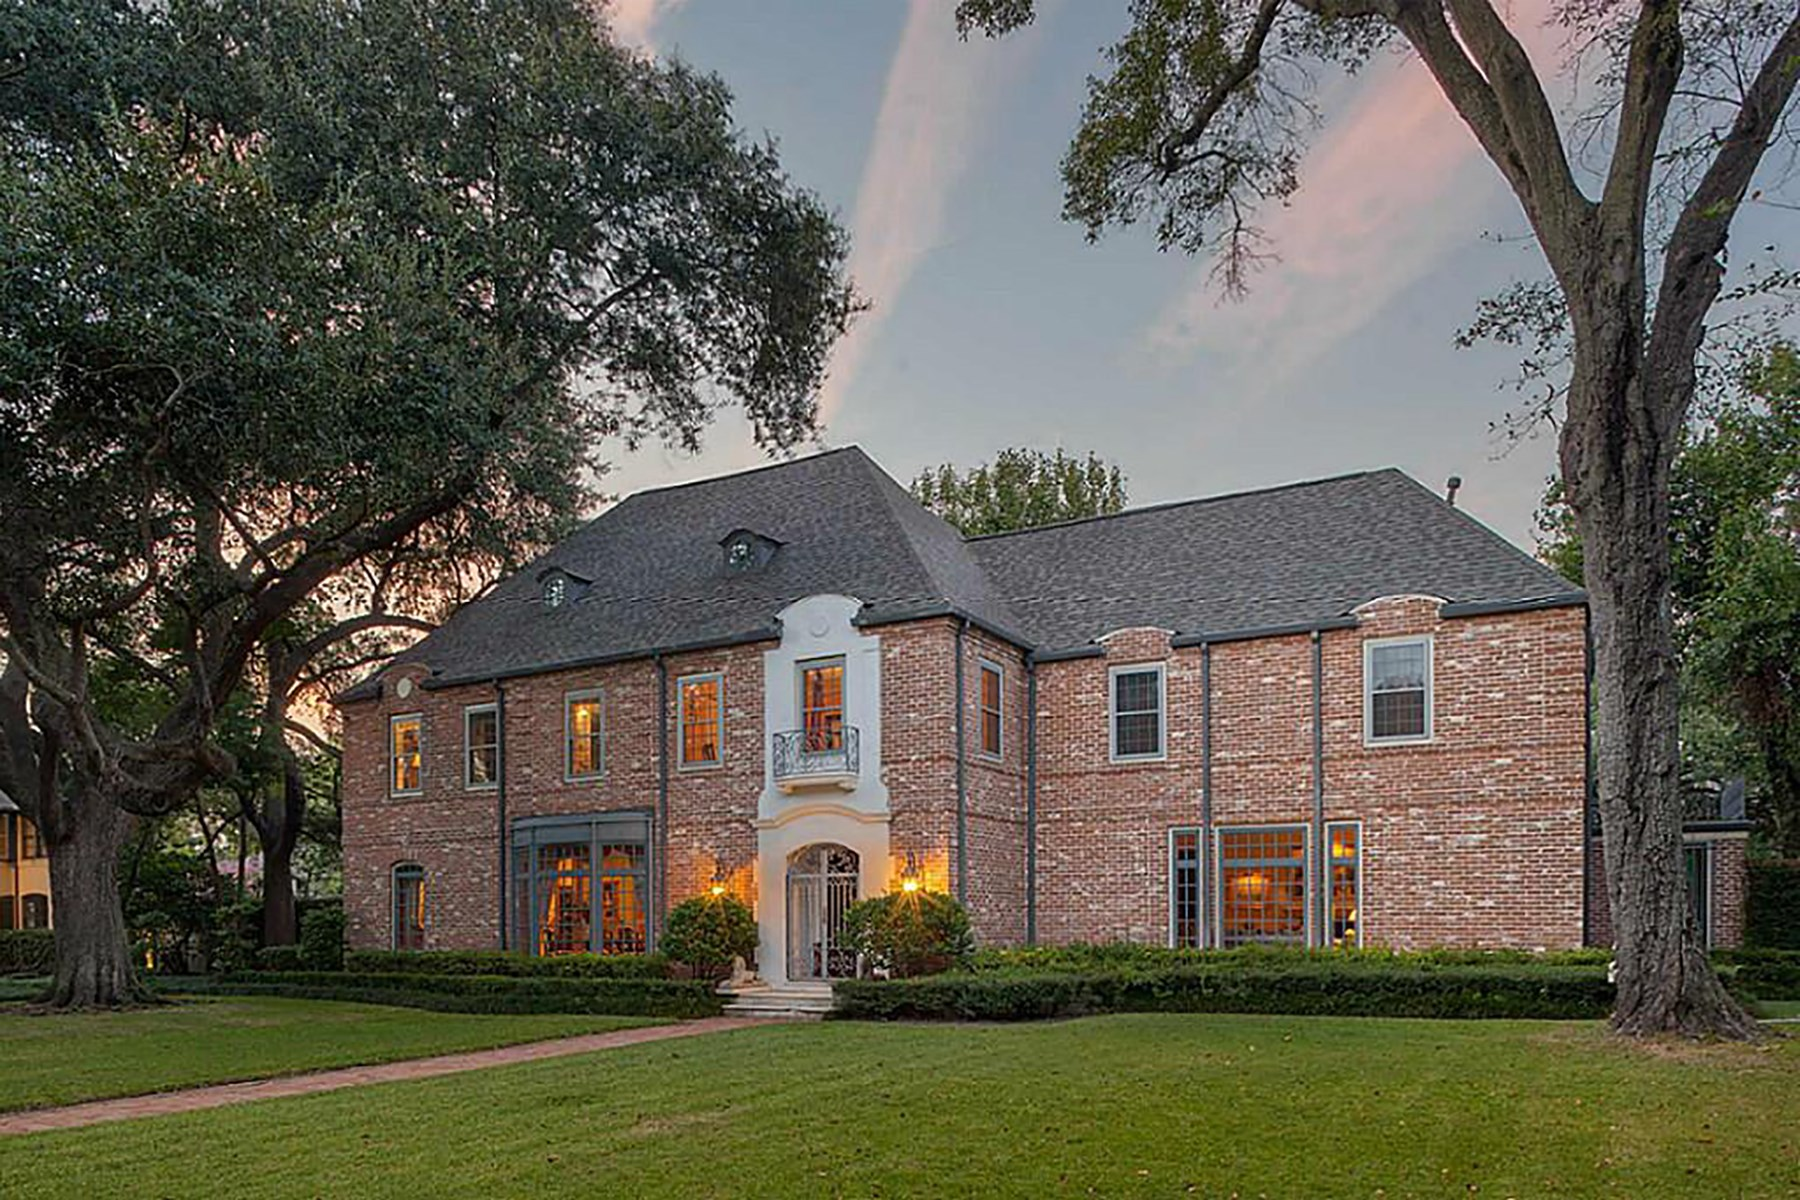 Maison unifamiliale pour l Vente à 1412 North Boulevard Houston, Texas, 77006 États-Unis